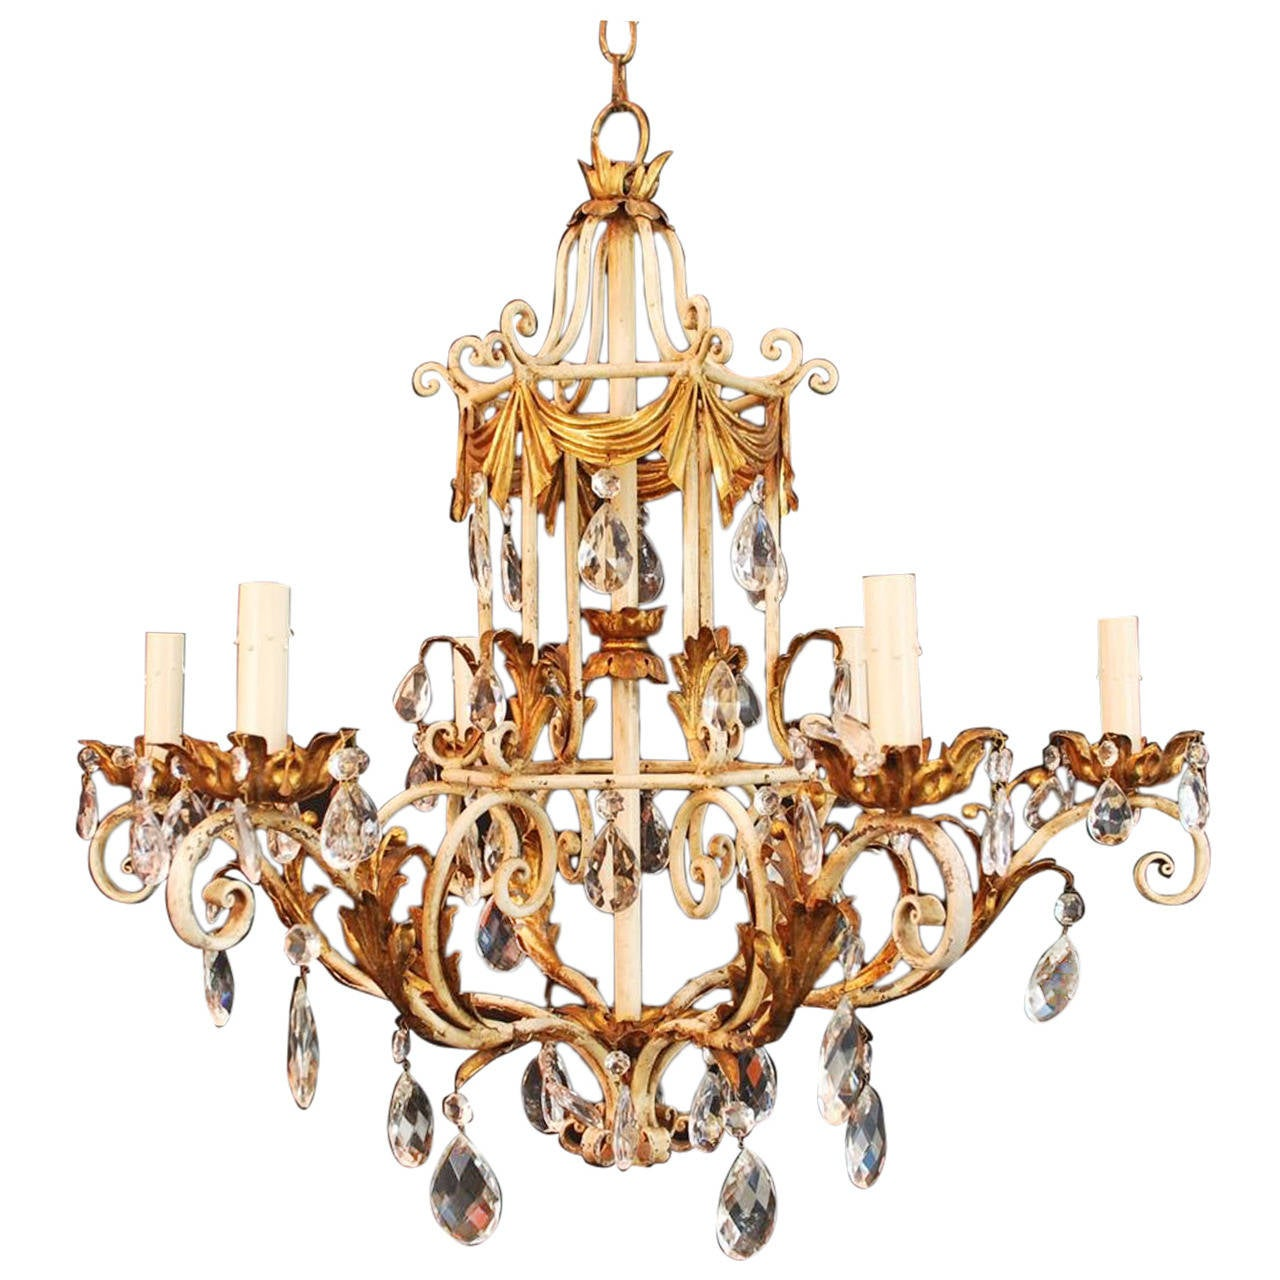 1950 Italian Wrought Iron And Crystal Chandelier For Sale